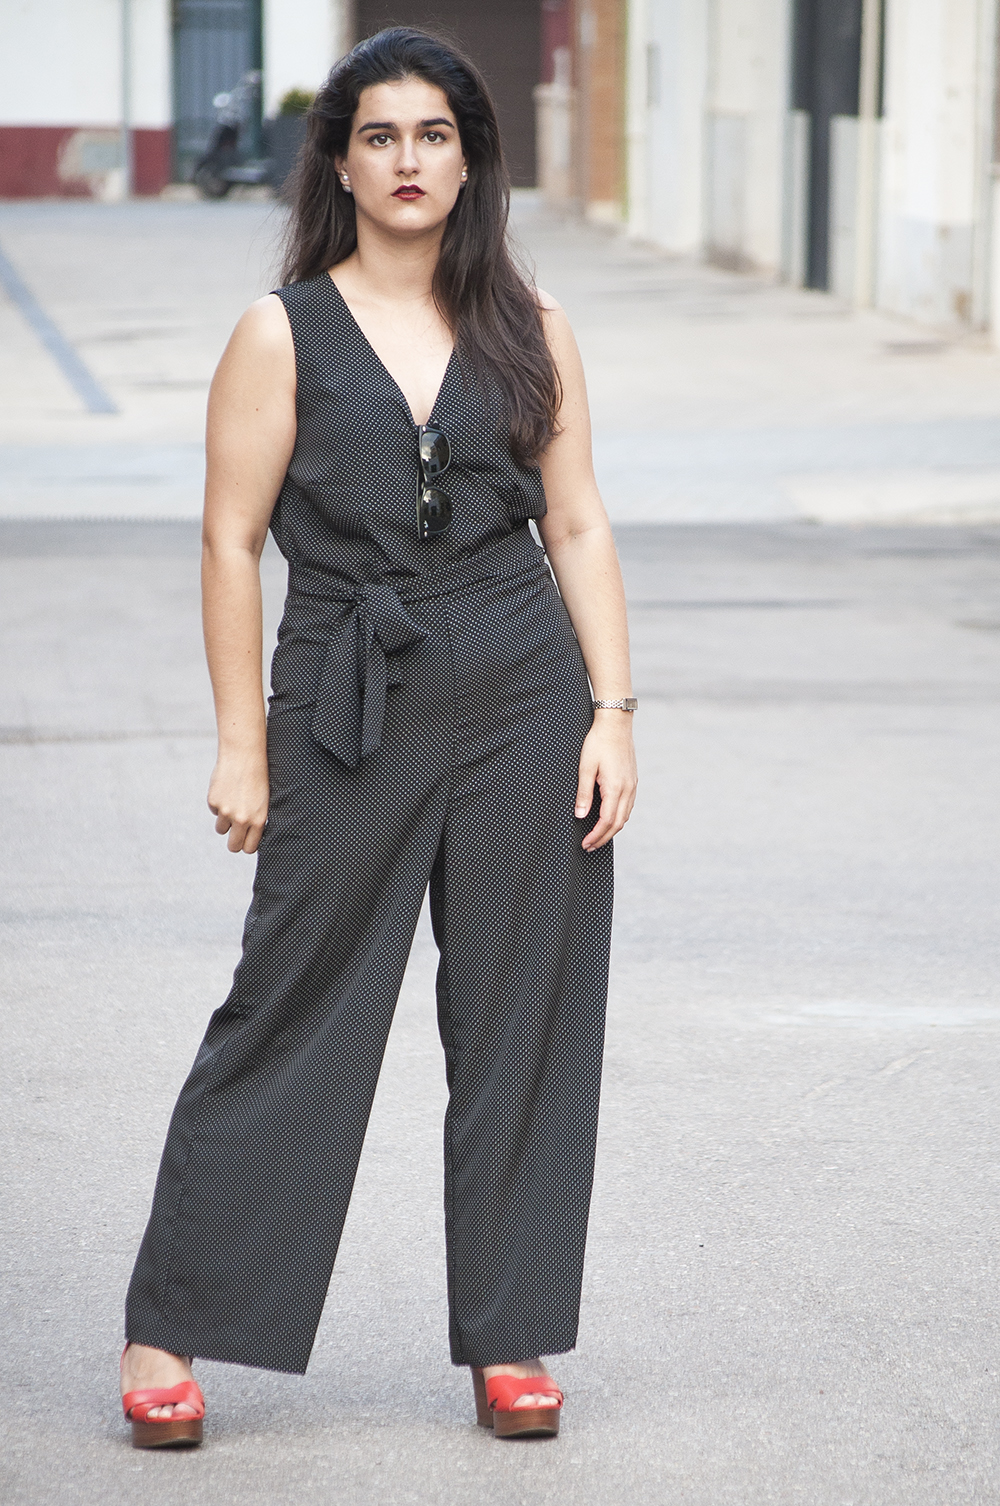 something fashion blogger influencer streetstyle spain valencia outfits summer jumpsuit inspiration_0582